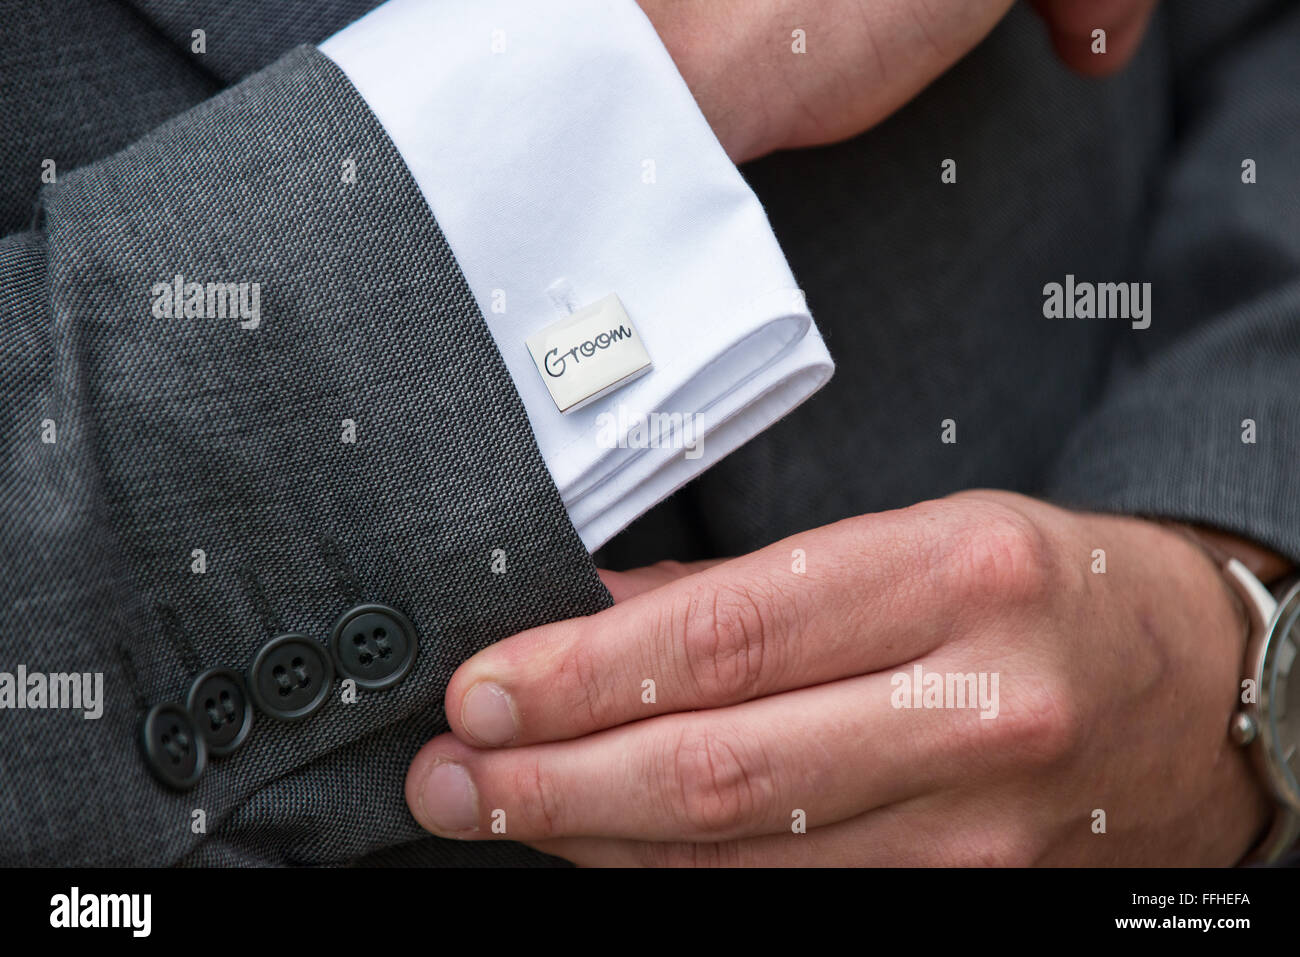 A grooms hands adjusting his sleeves at his wedding, revealing his shirts cuff & silver cufflinks displaying - Stock Image